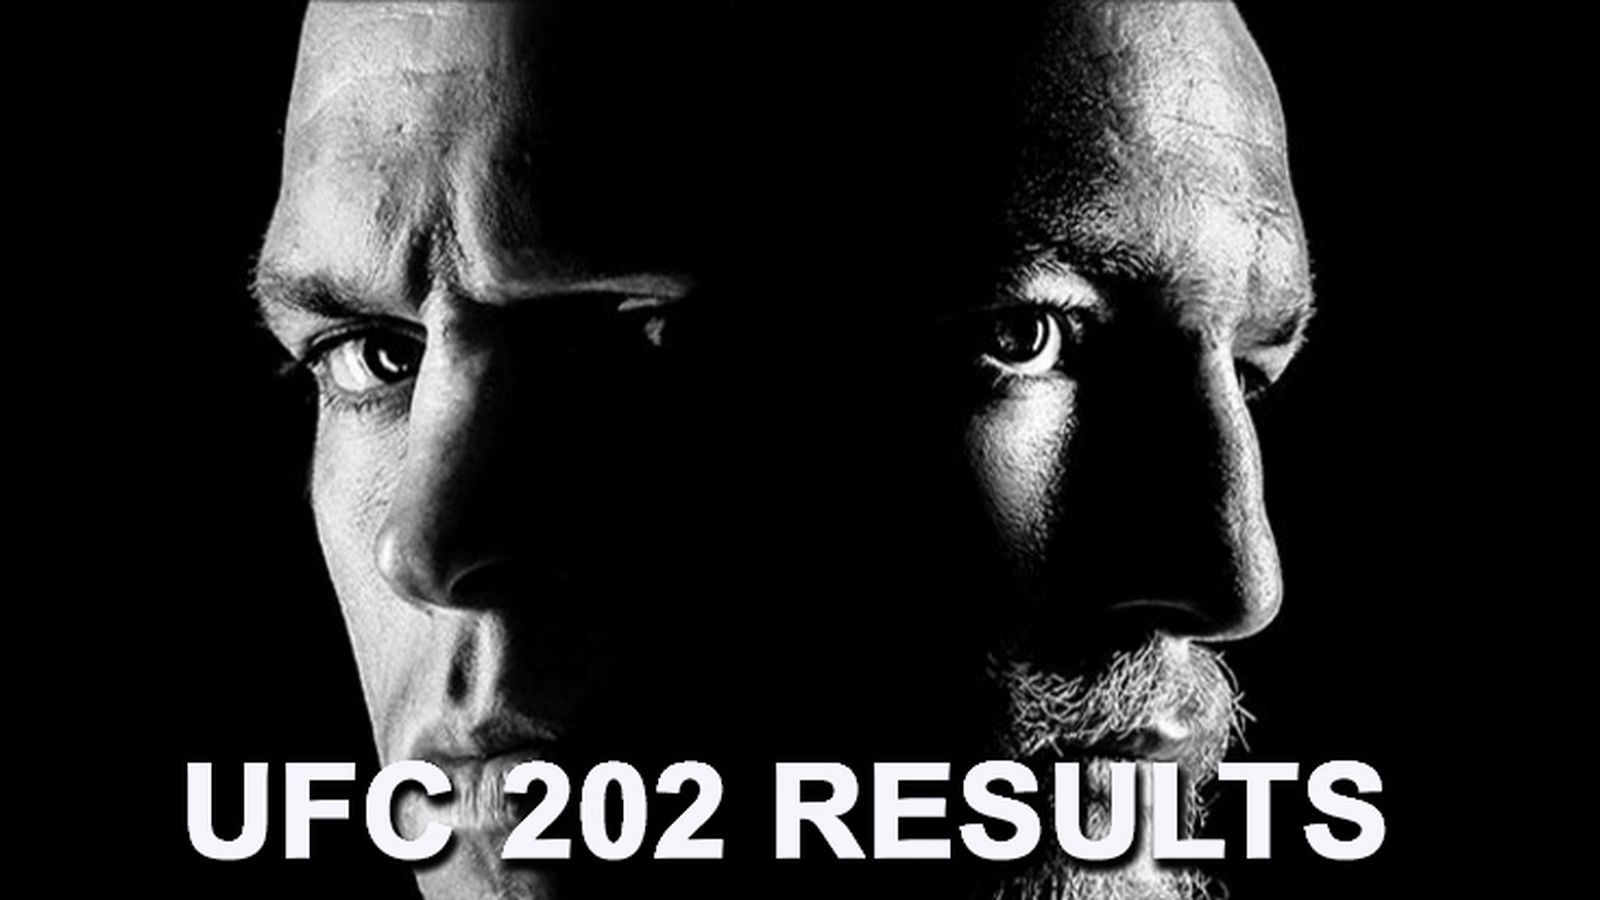 Ufc 202 Results Conor Mcgregor Vs Nate Diaz 2 Live Stream Play By Play Updates Mmamania Com